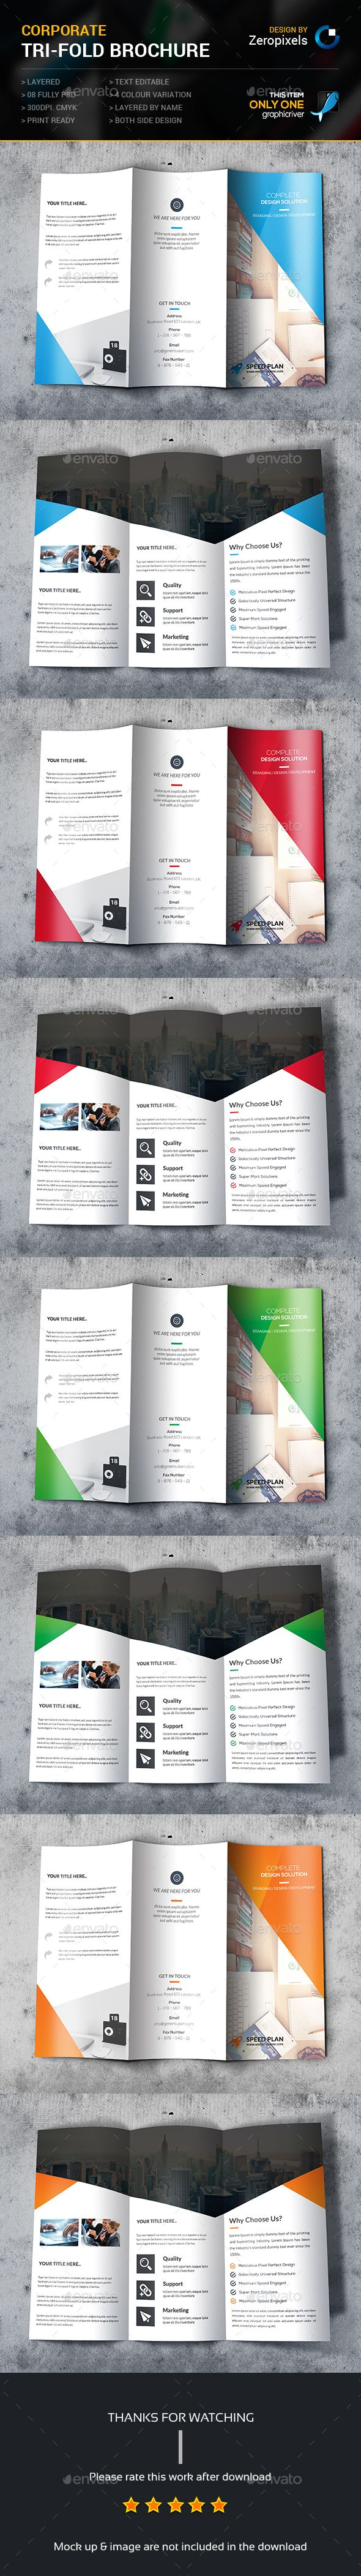 Corporate Business Tri-fold Brochure Template PSD. Download here: http://graphicriver.net/item/corporate-business-trifold-brochure/15277044?ref=ksioks